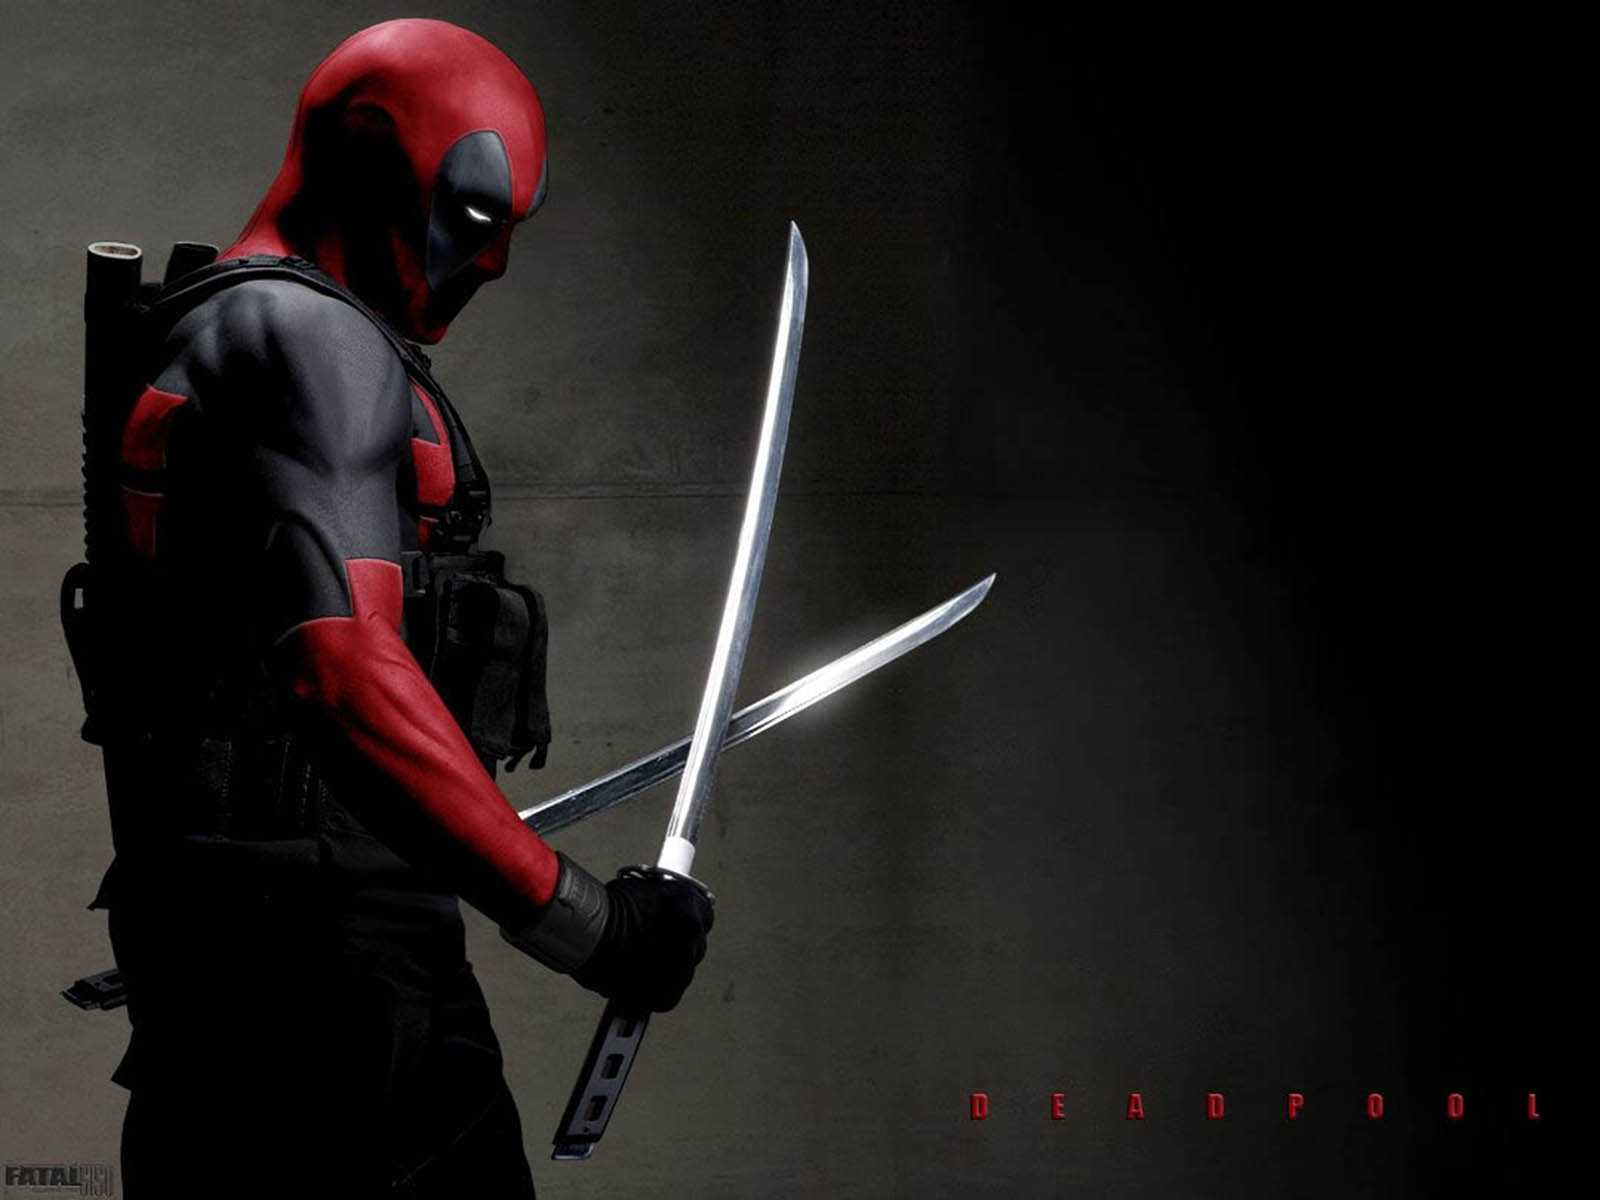 Deadpool Movie Is On Its Way According To Director Tim Miller